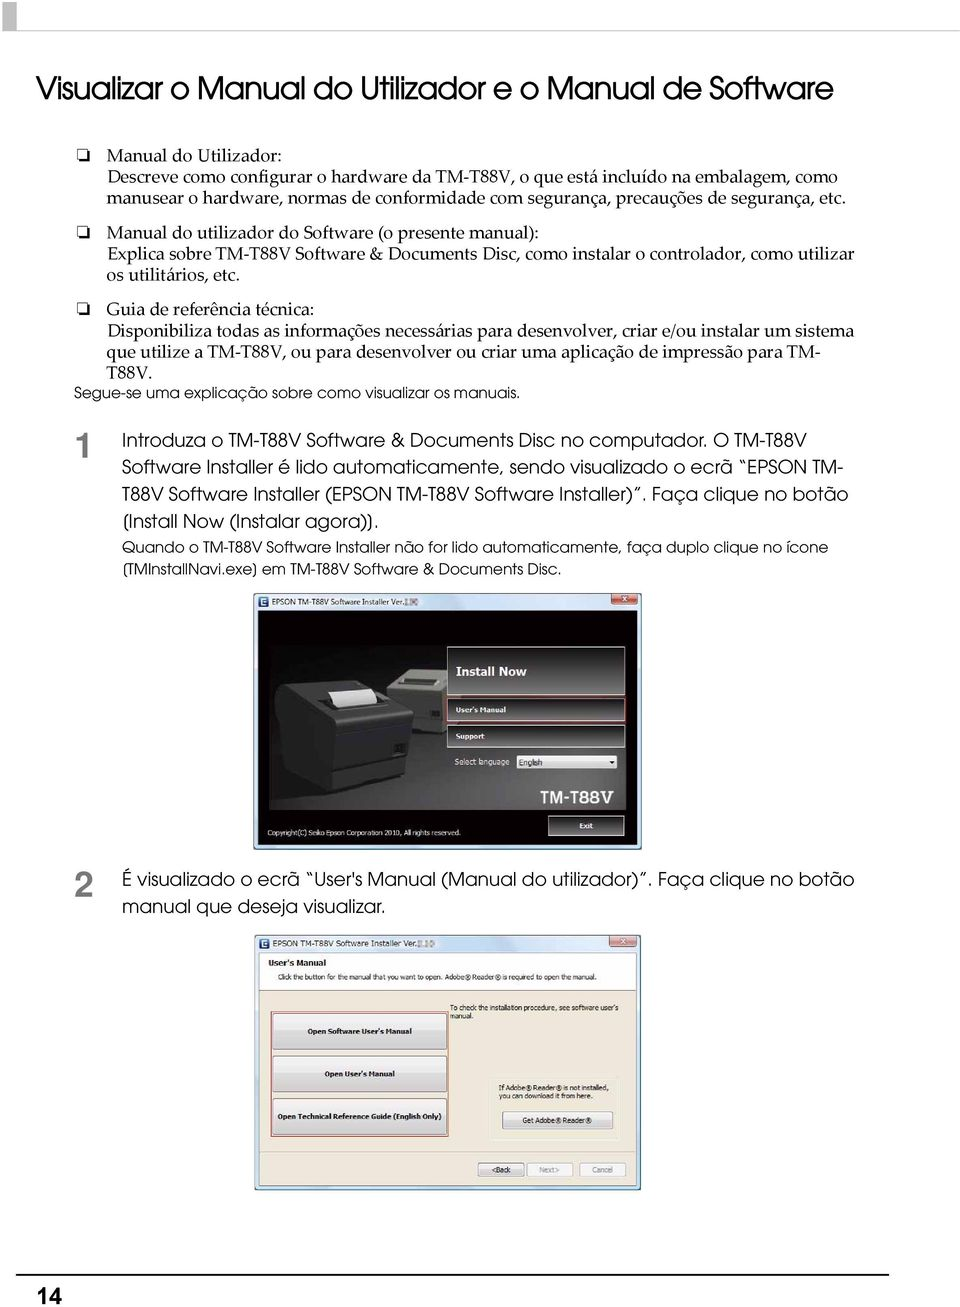 Manual do utilizador do Software (o presente manual): Explica sobre TM T88V Software & Documents Disc, como instalar o controlador, como utilizar os utilitários, etc.